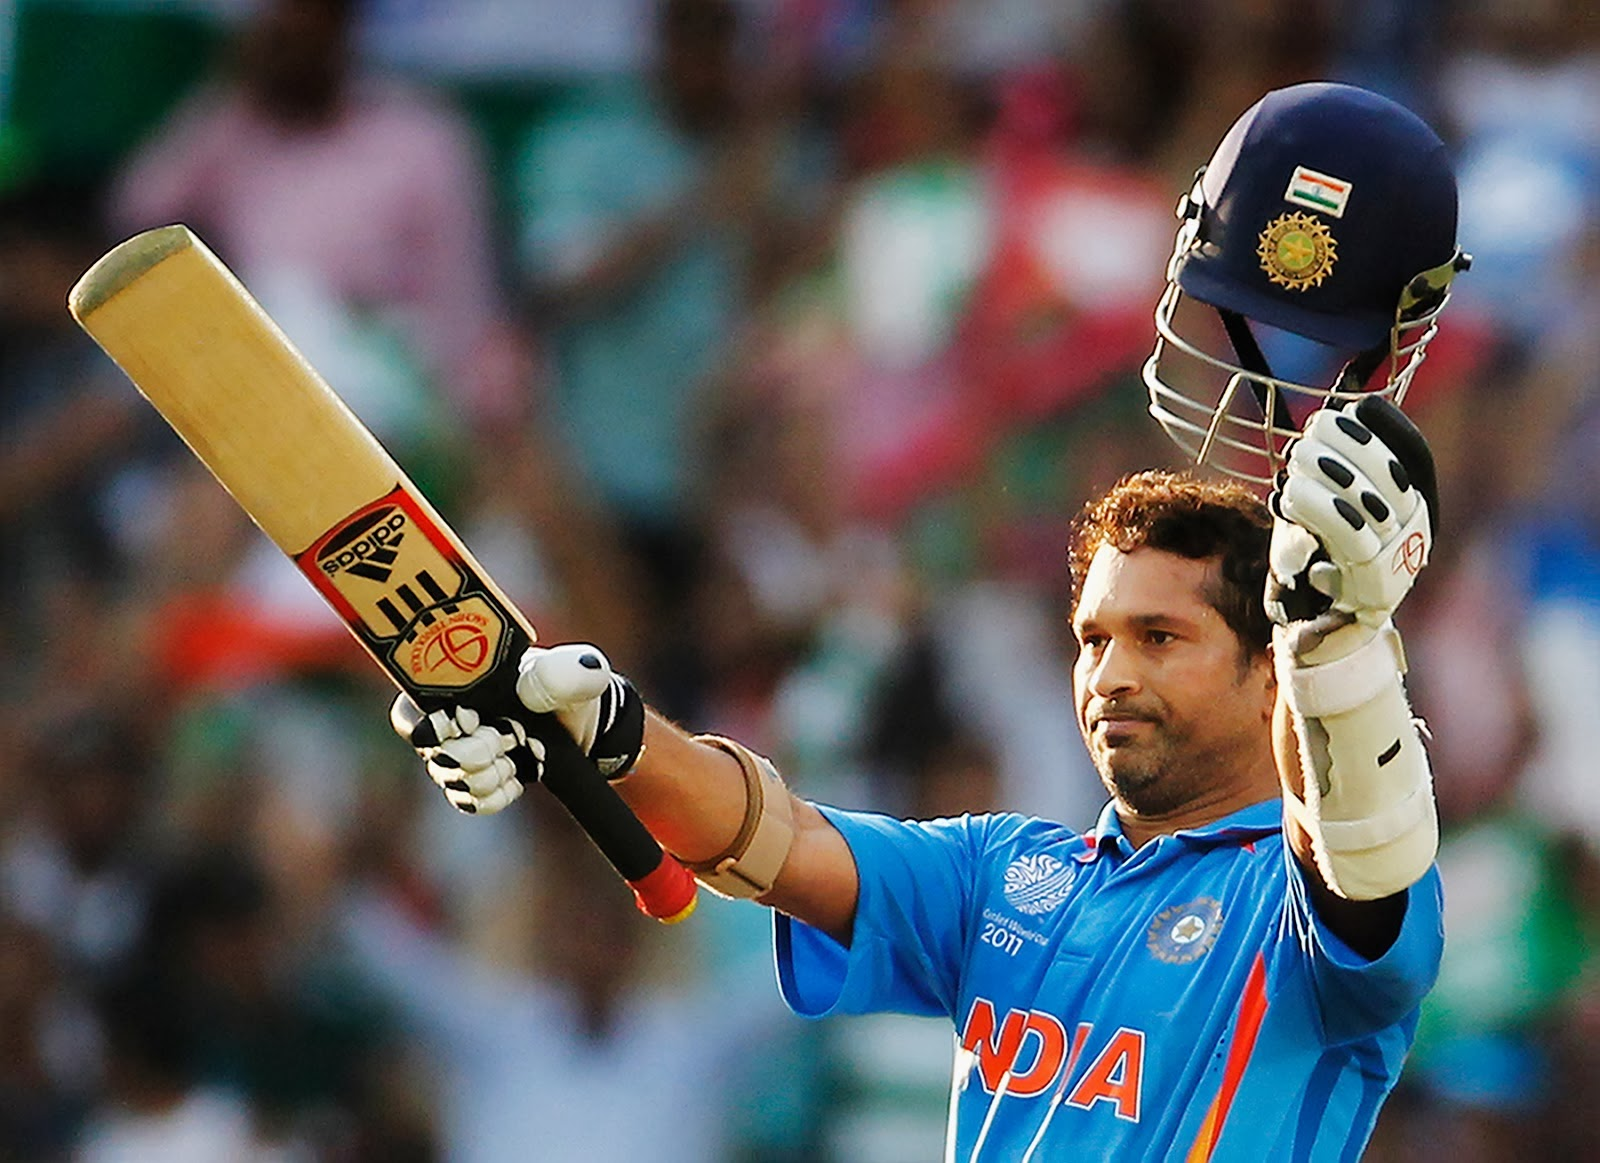 Is it ok to write about an Indian cricket player for a US university essay?